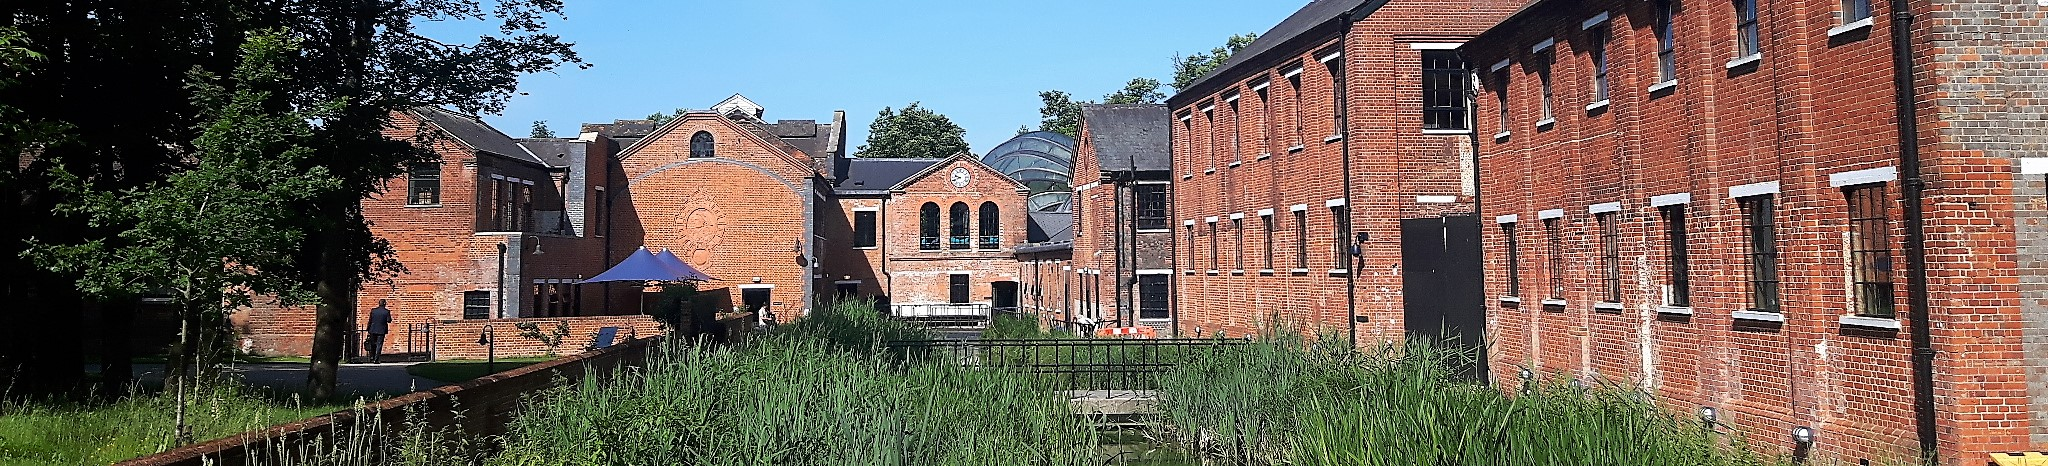 The Bombay Sapphire Distillery buildings at Laverstoke near Whitchurch in Hampshire